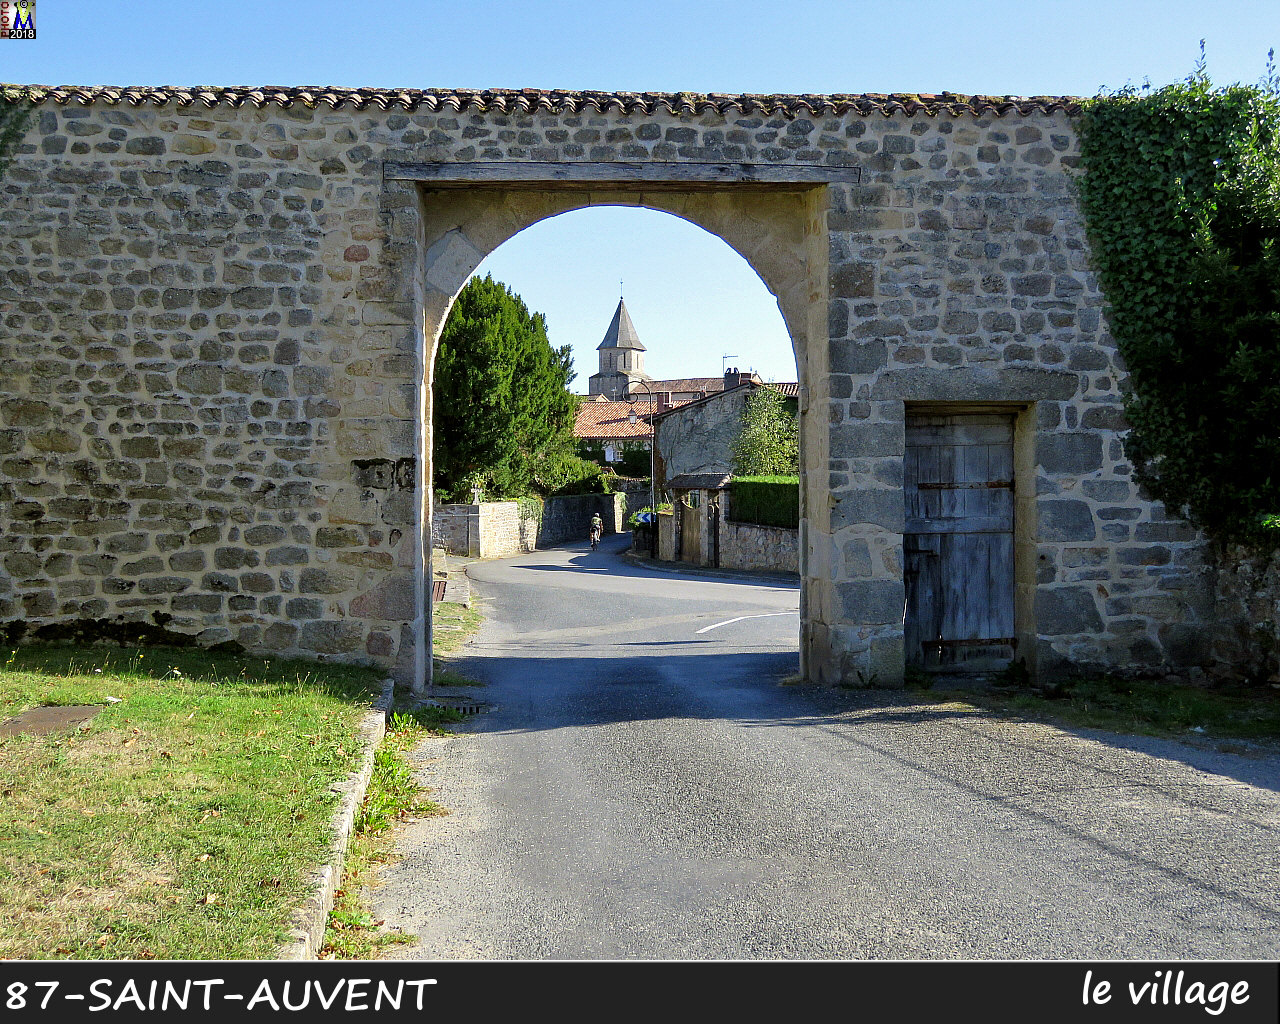 87St-AUVENT_village_1006.jpg